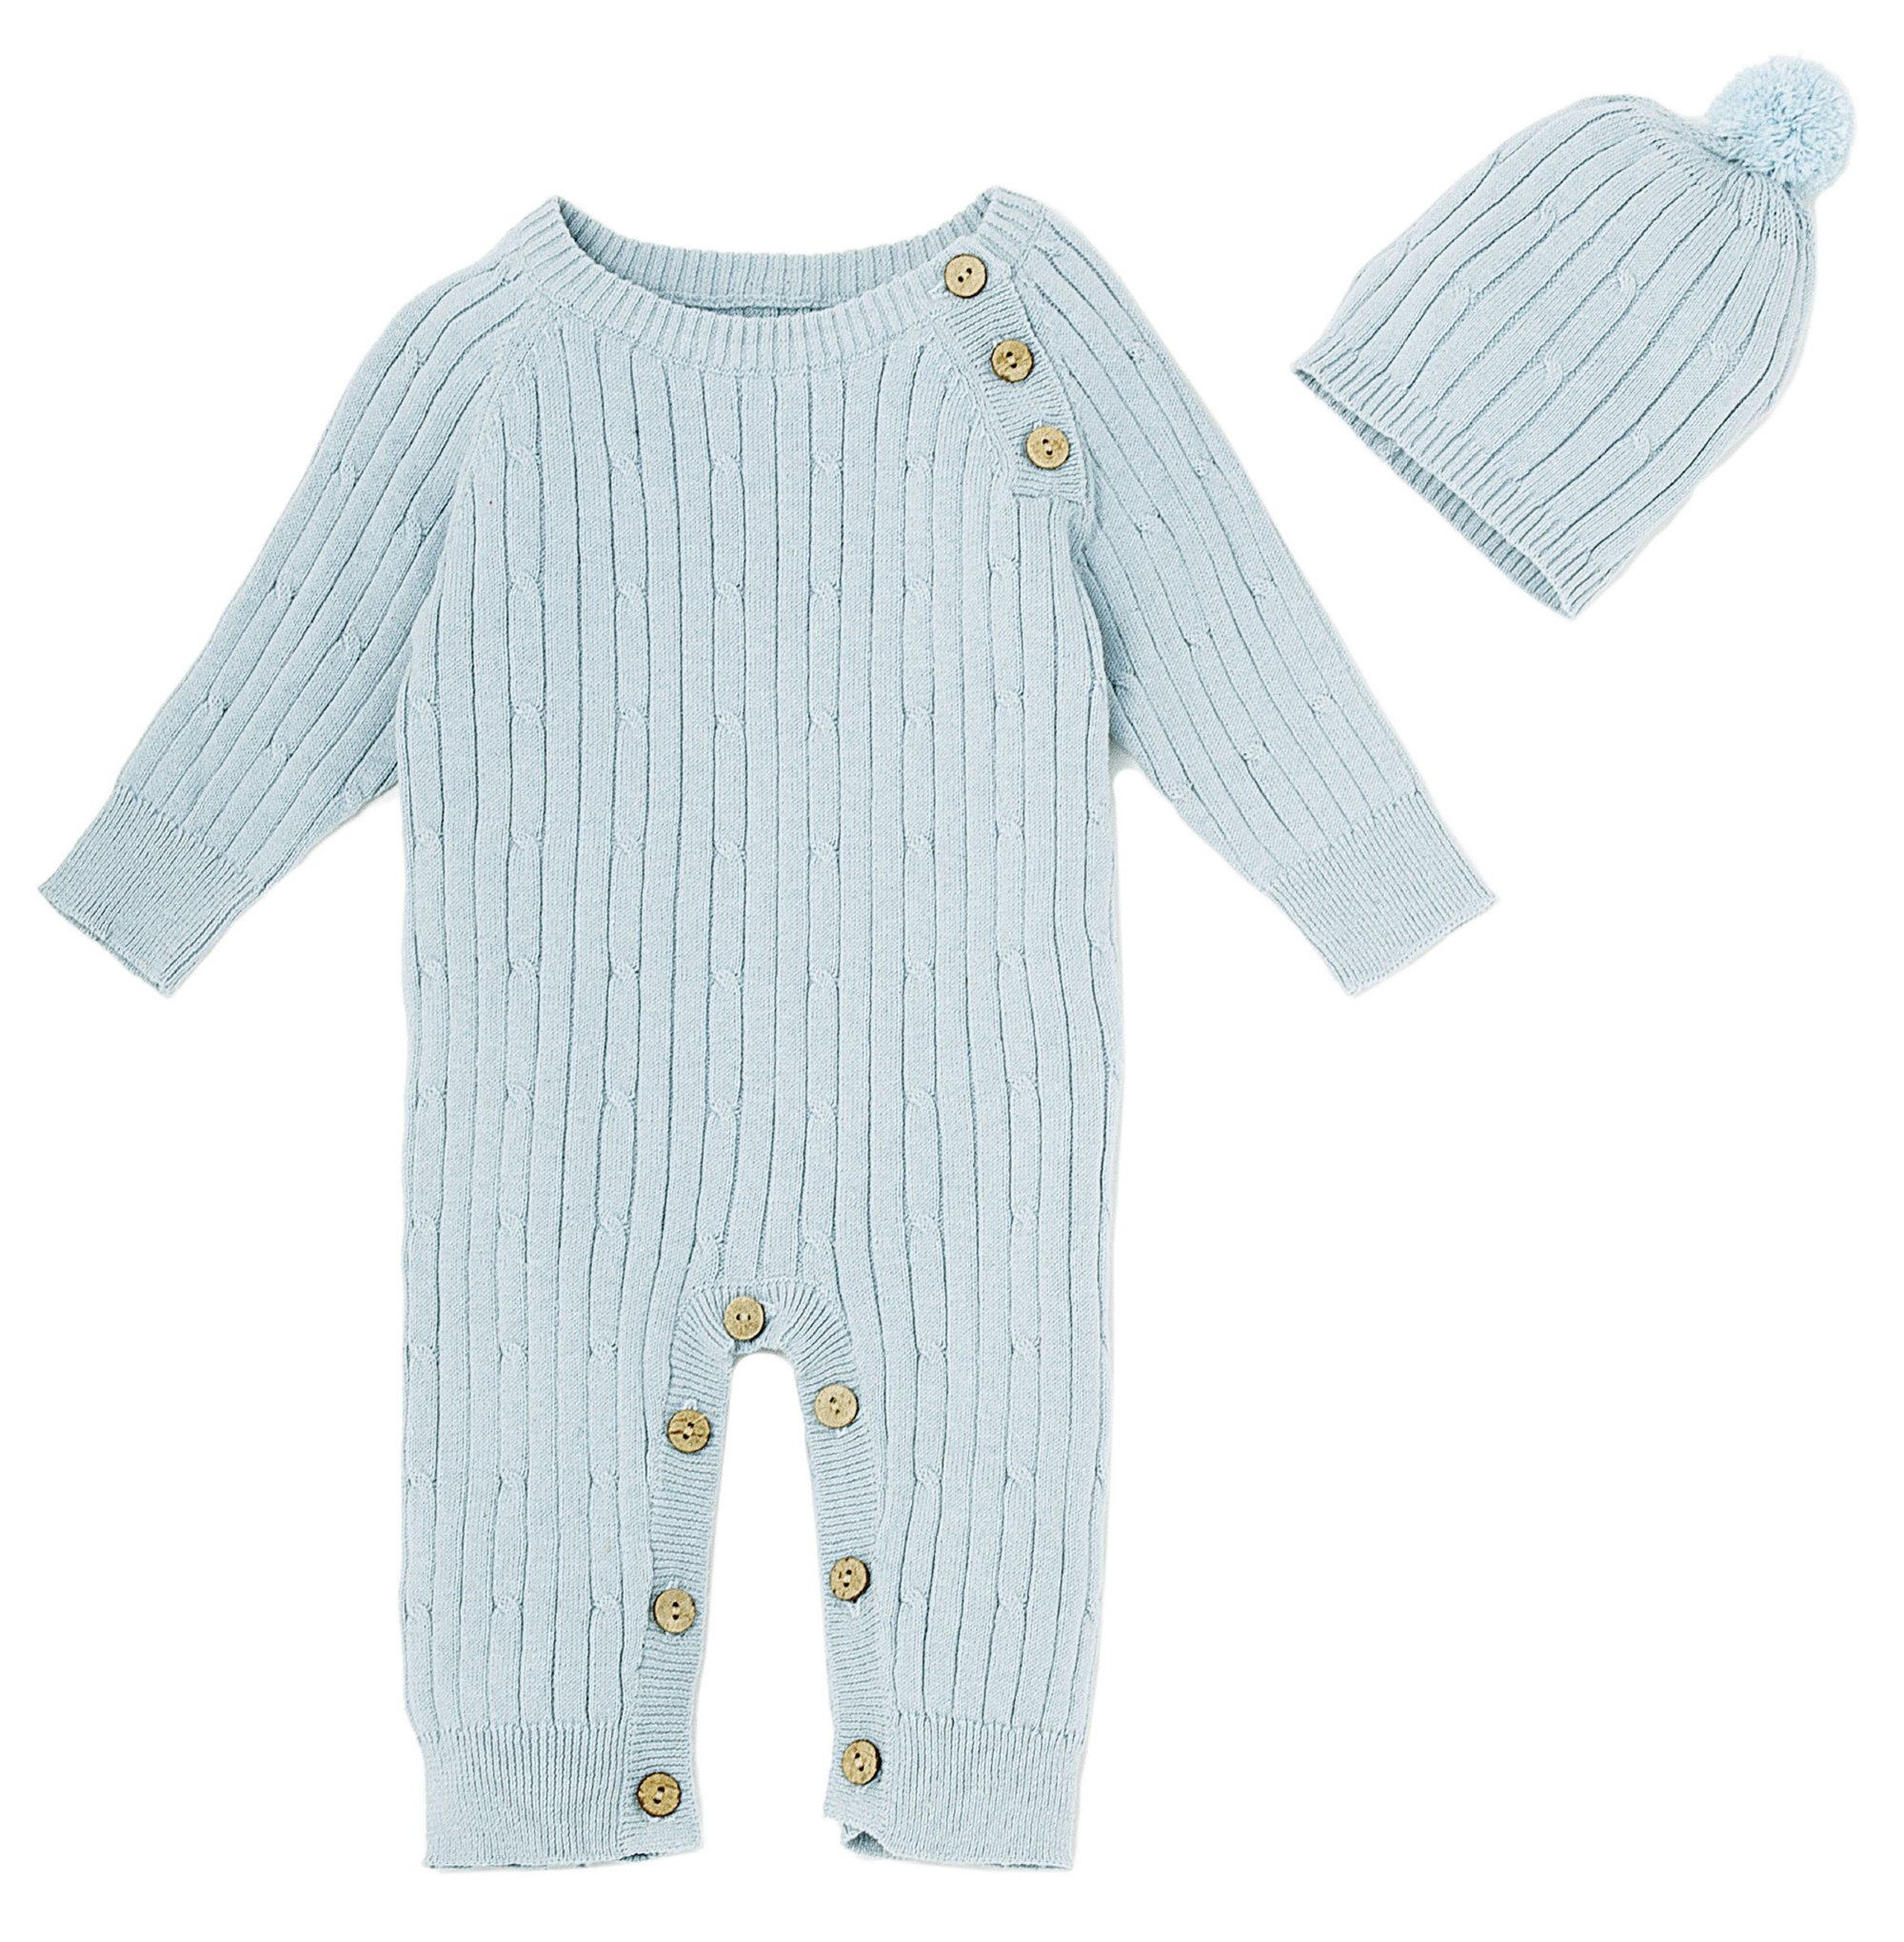 553cf02b8 Le Top Bébé Little Boy Blue Cable Knit Romper and Hat Set for Newborns and  Baby Boys